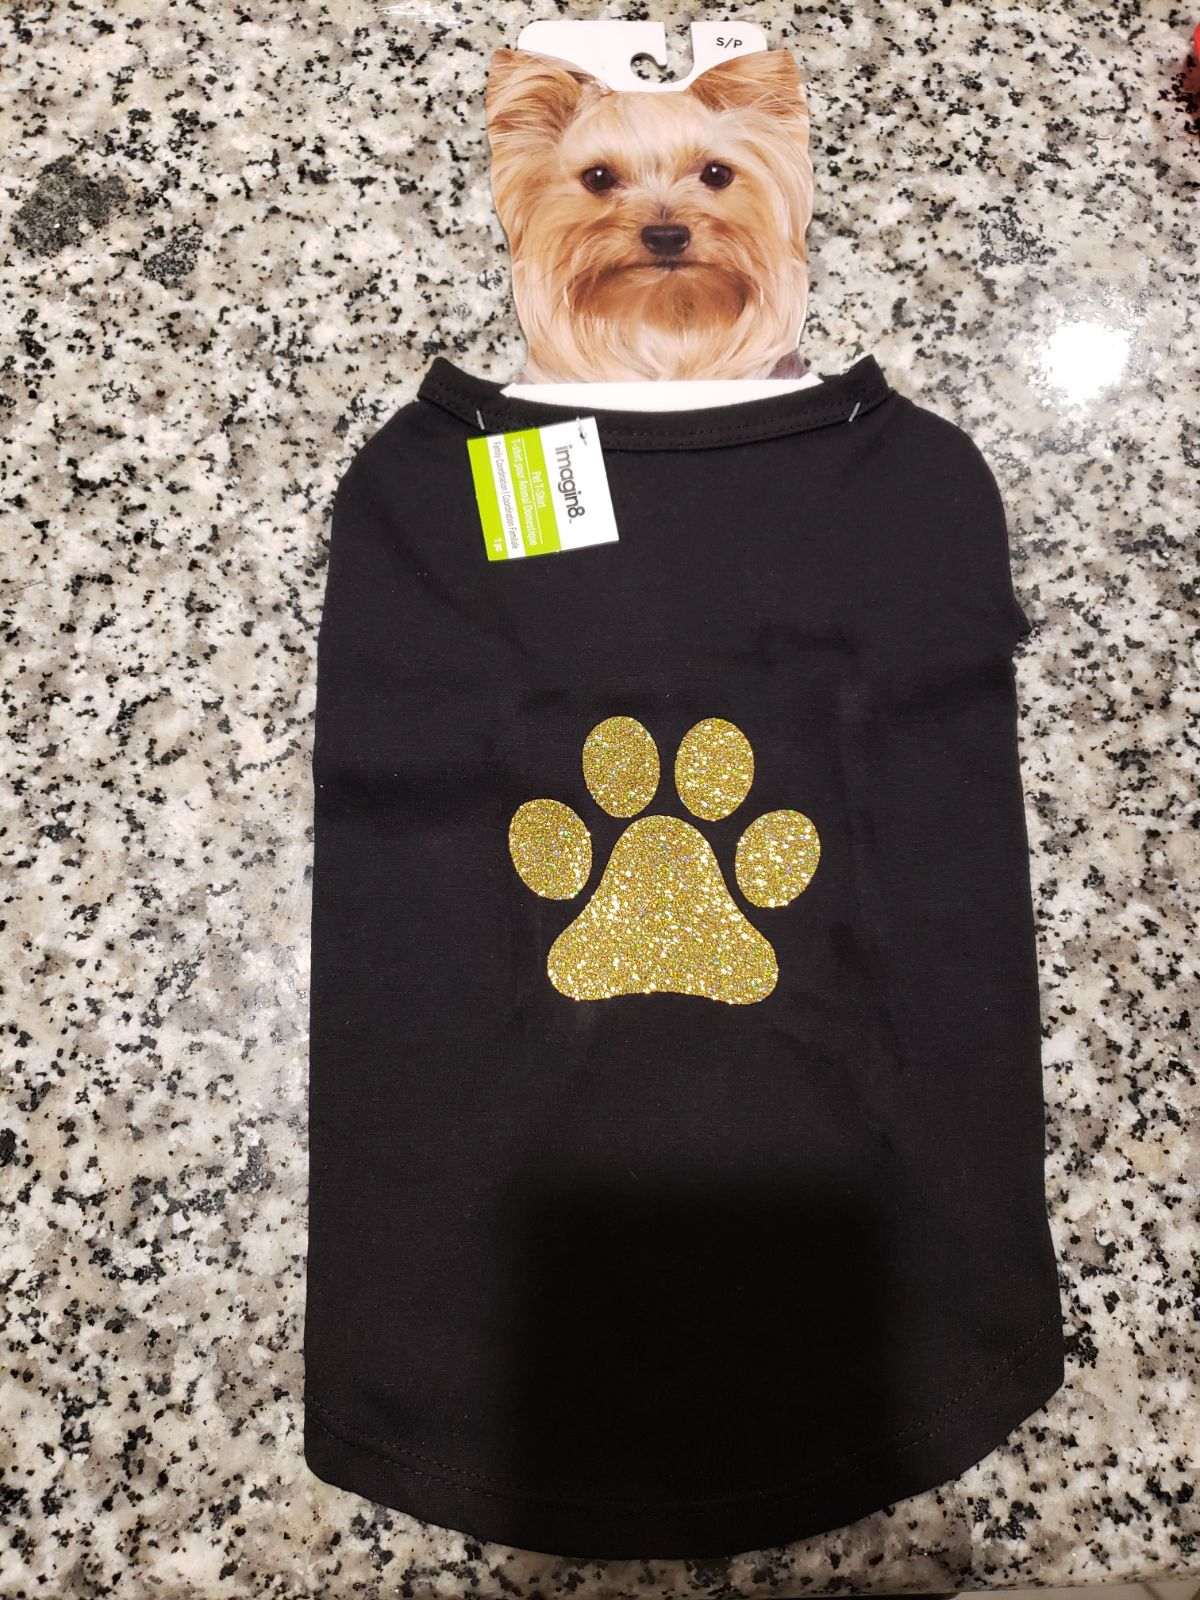 New Dog outfit